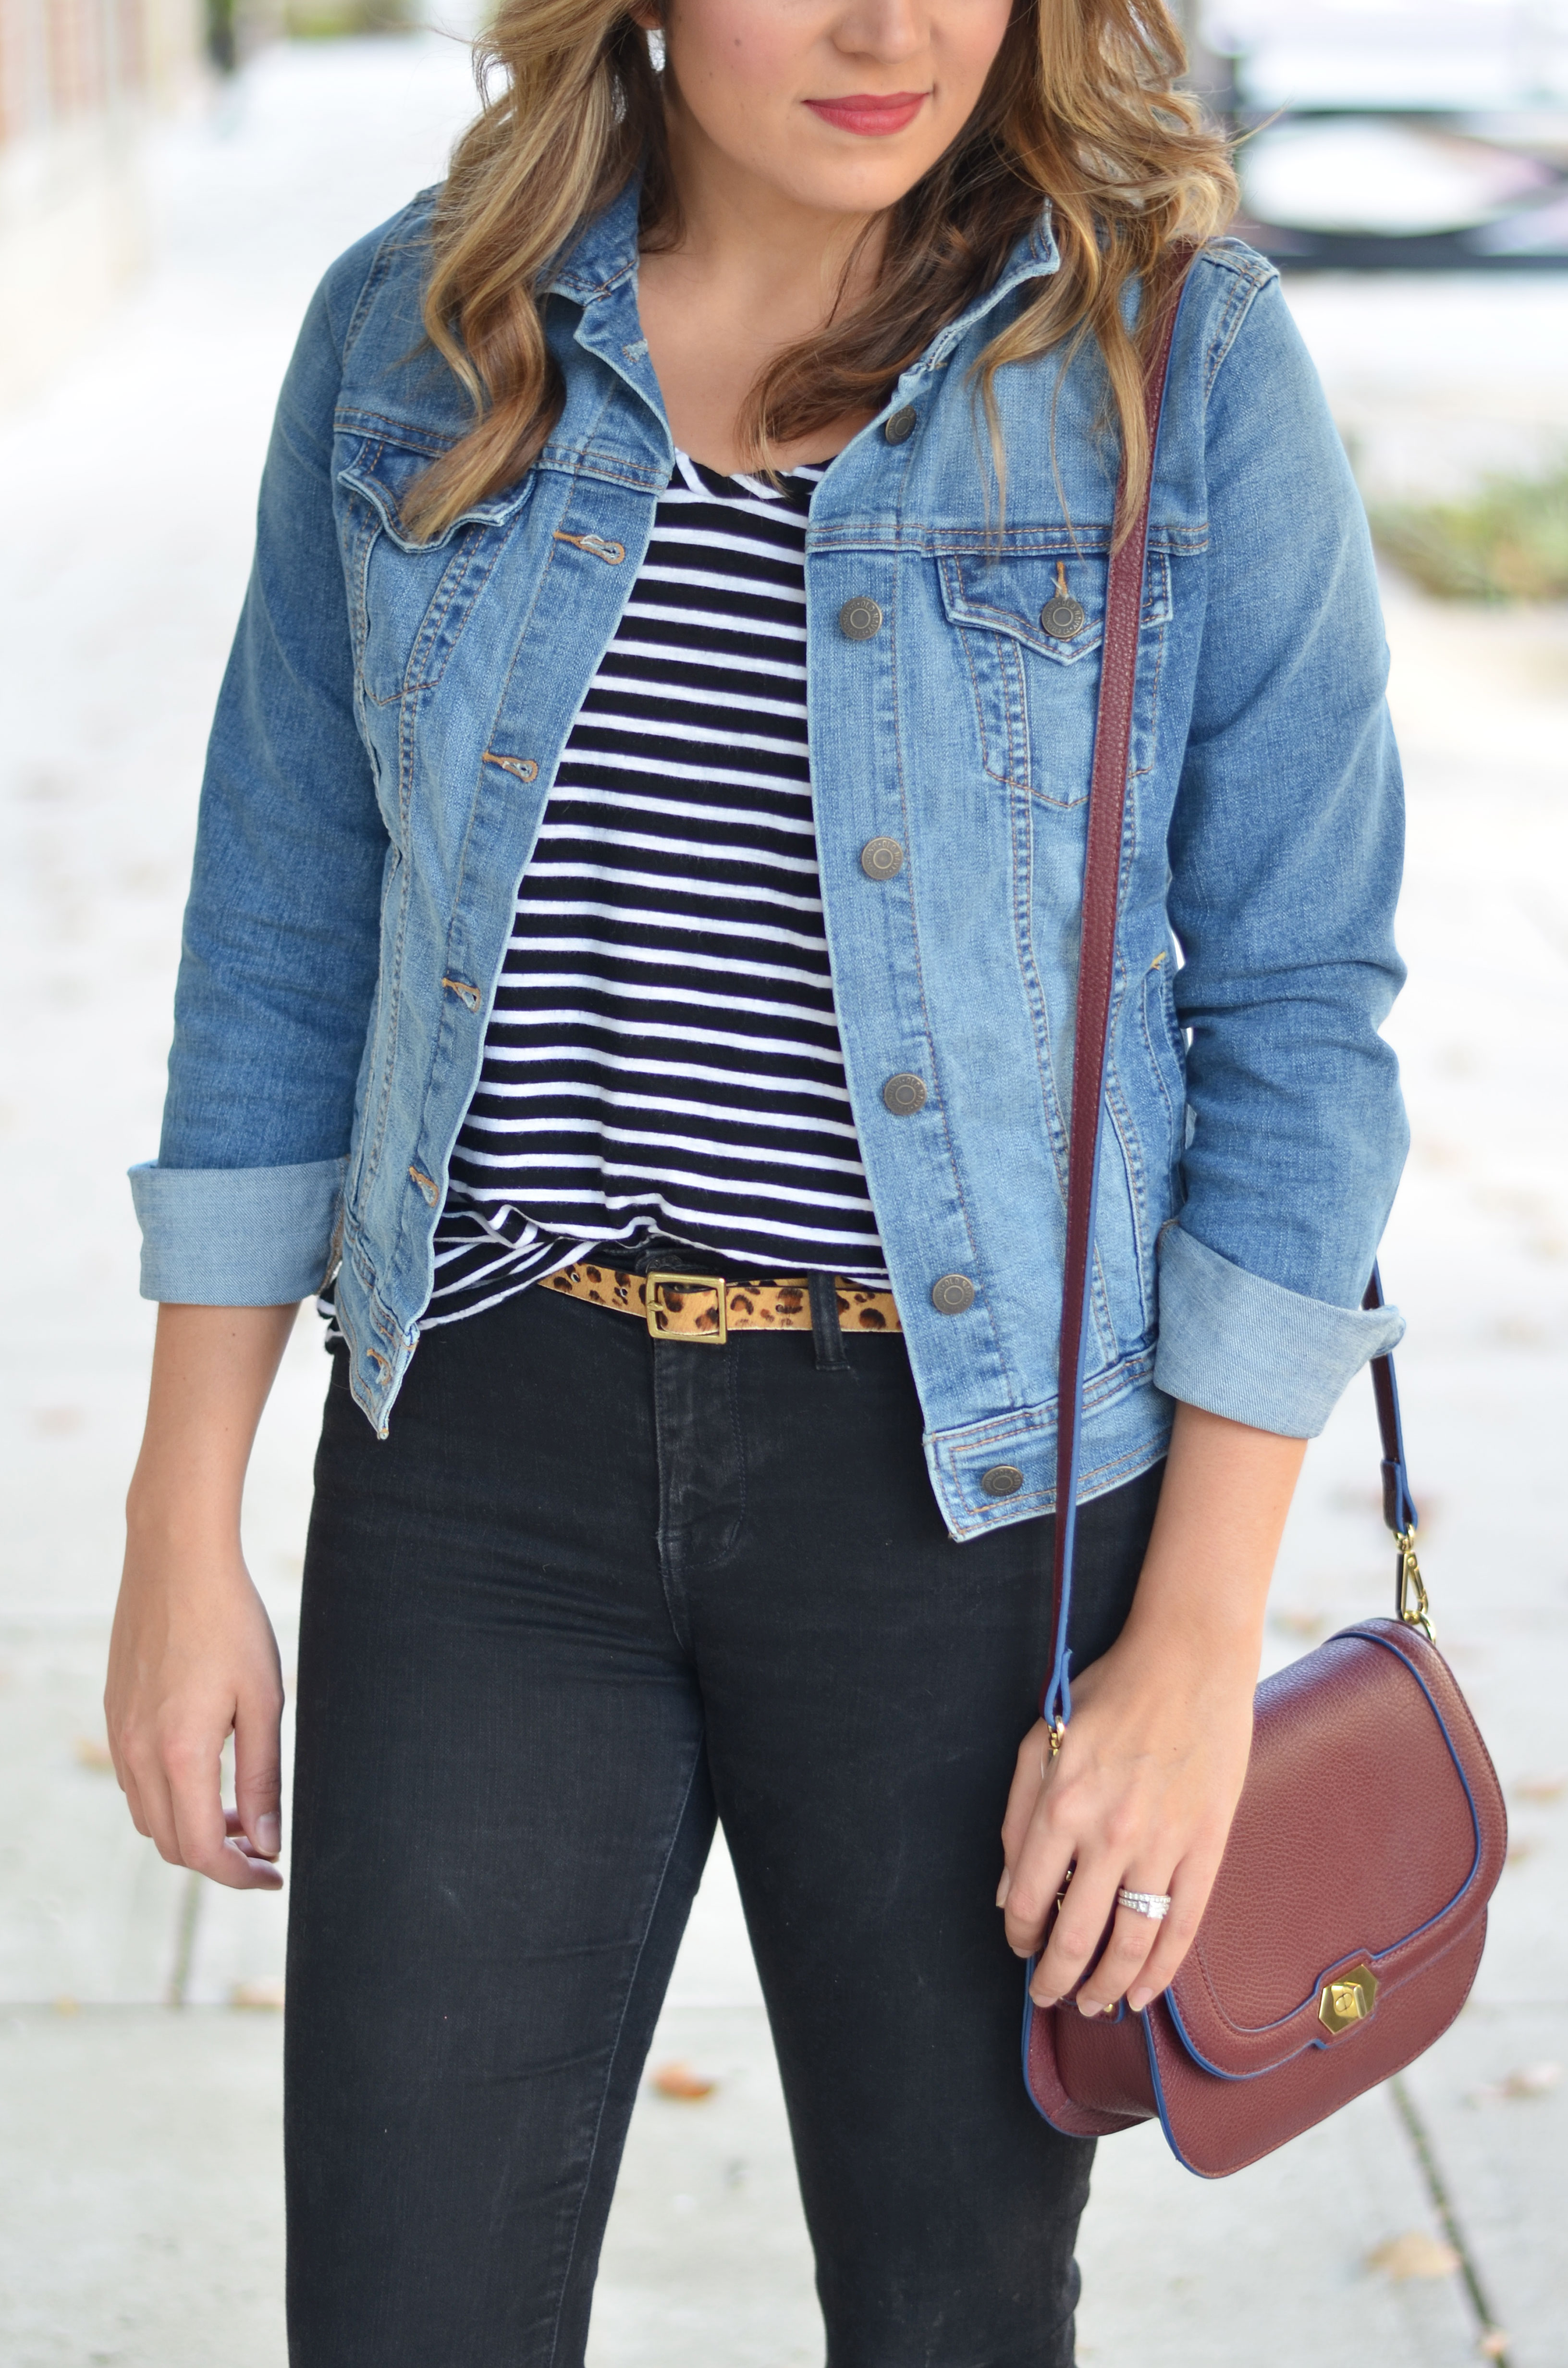 stripes and leopard - black jeans, striped tee and leopard print belt | www.bylaurenm.com